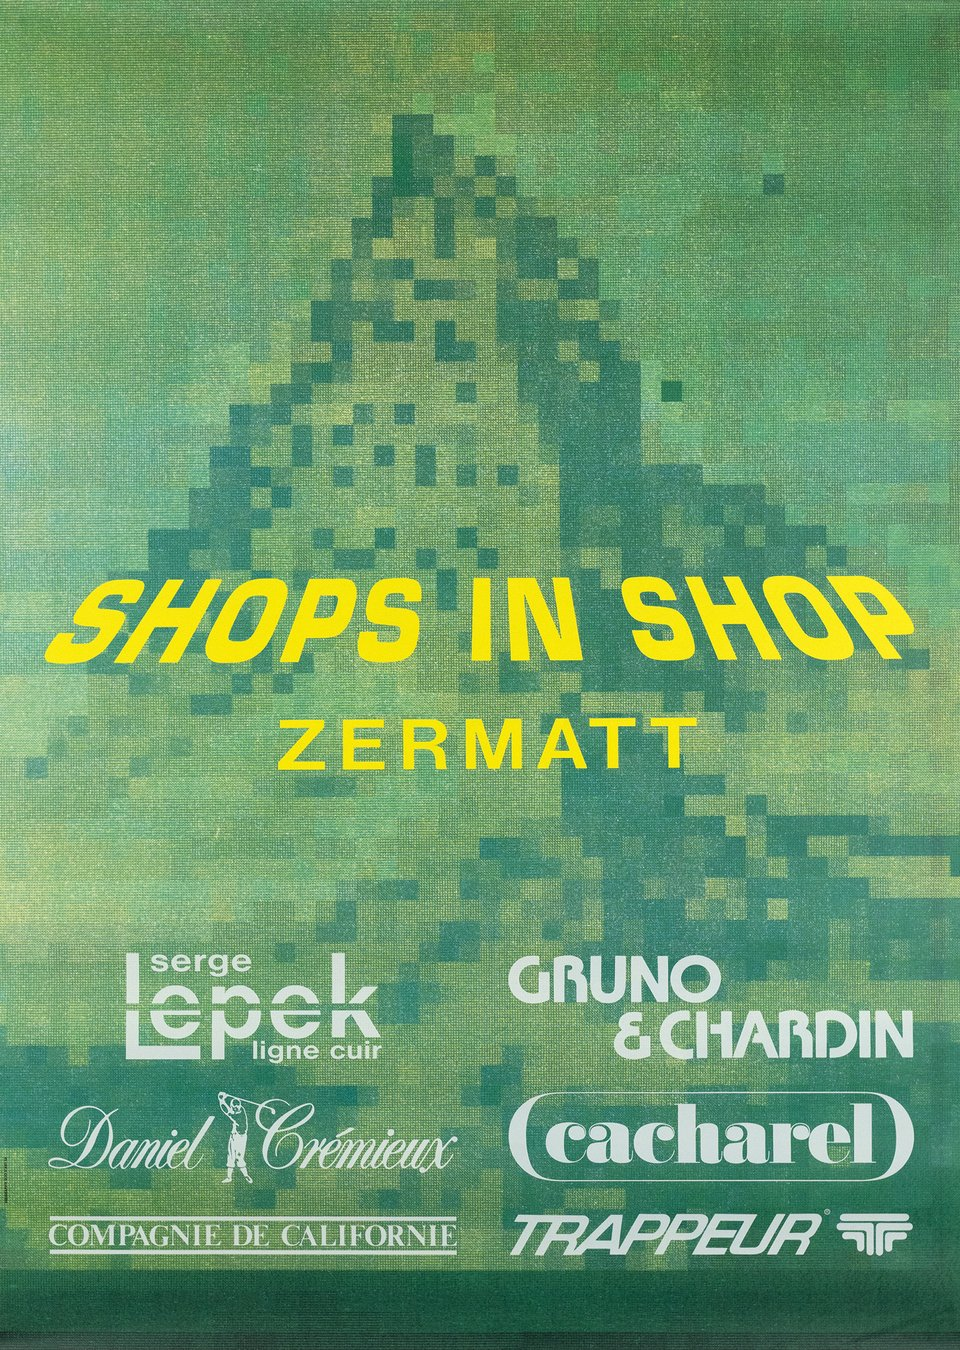 Shops in Shop Zermatt – Affiche ancienne – ANONYME – 1990